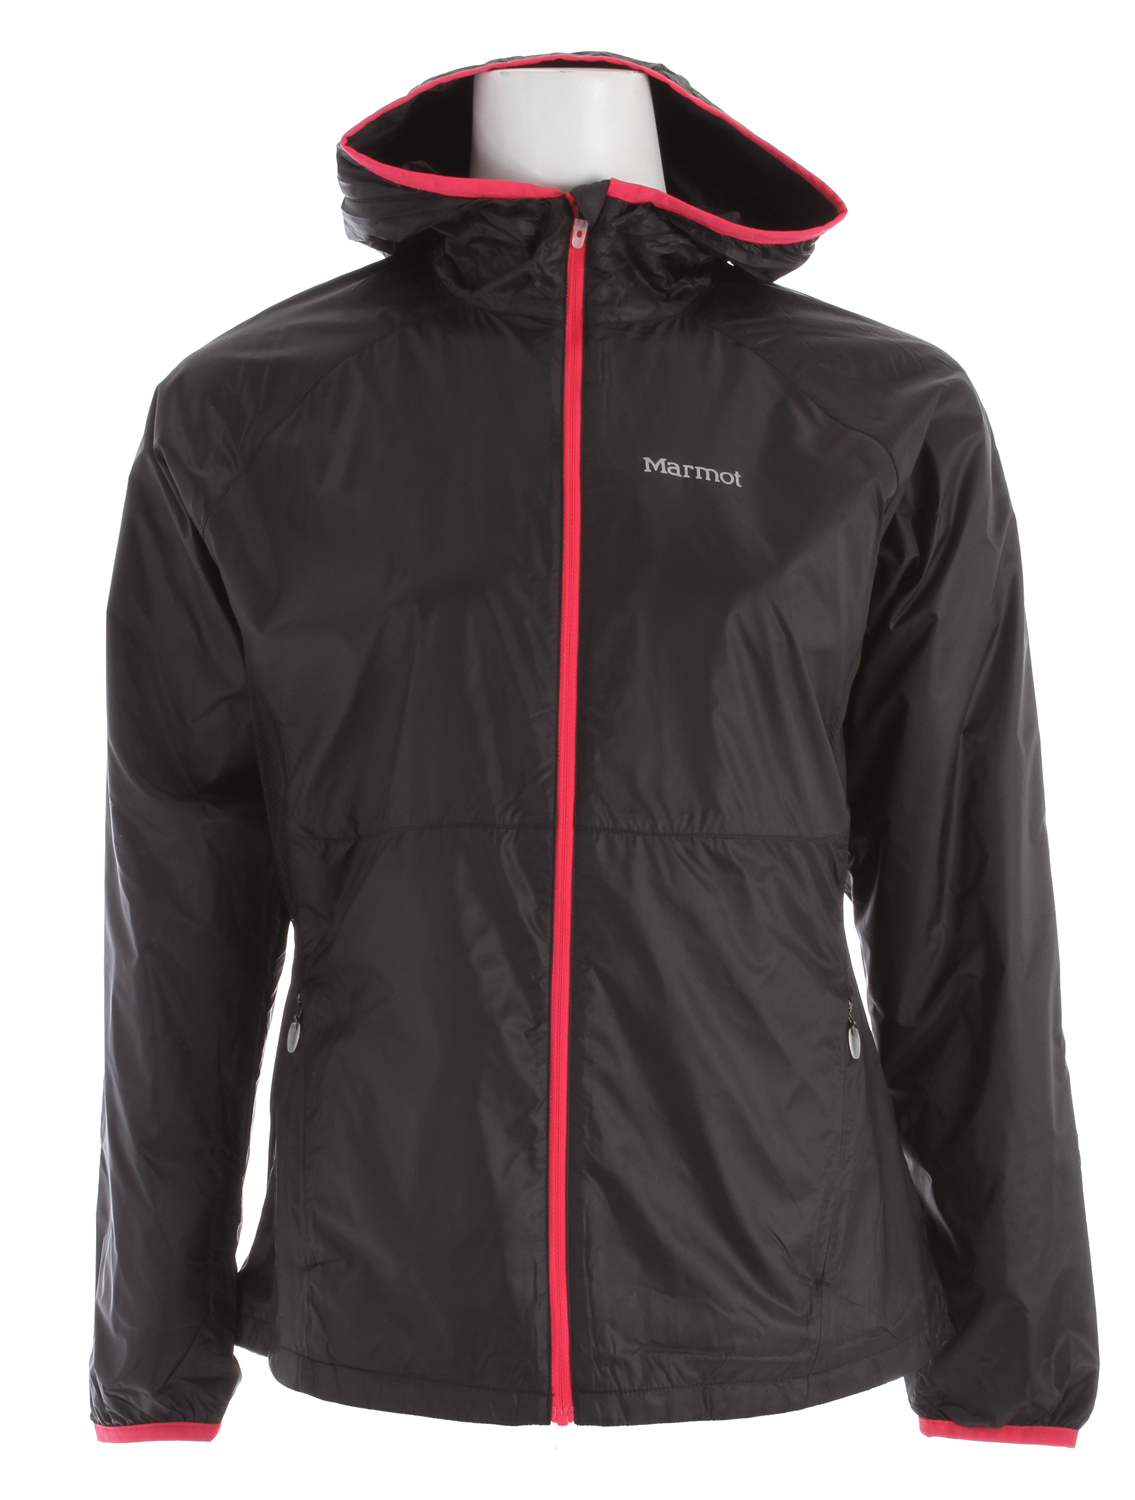 Key Features of the Marmot Ether Driclime Jacket: Wind Resistant, Water Repellent, and Breathable DriClime Bi-Component Wicking Lining Interior Pocket DriClime Lined Collar and Chin Guard Elastic Cuffs Reflective Logos Angel- Wing Movement Sized Specifically for Women Weight 0lbs 8.4oz (238.1g) Materials 100% Polyester DWR Ottaman 2.2 oz/yd Center Back Length 26in Fit Regular Fit - $76.95